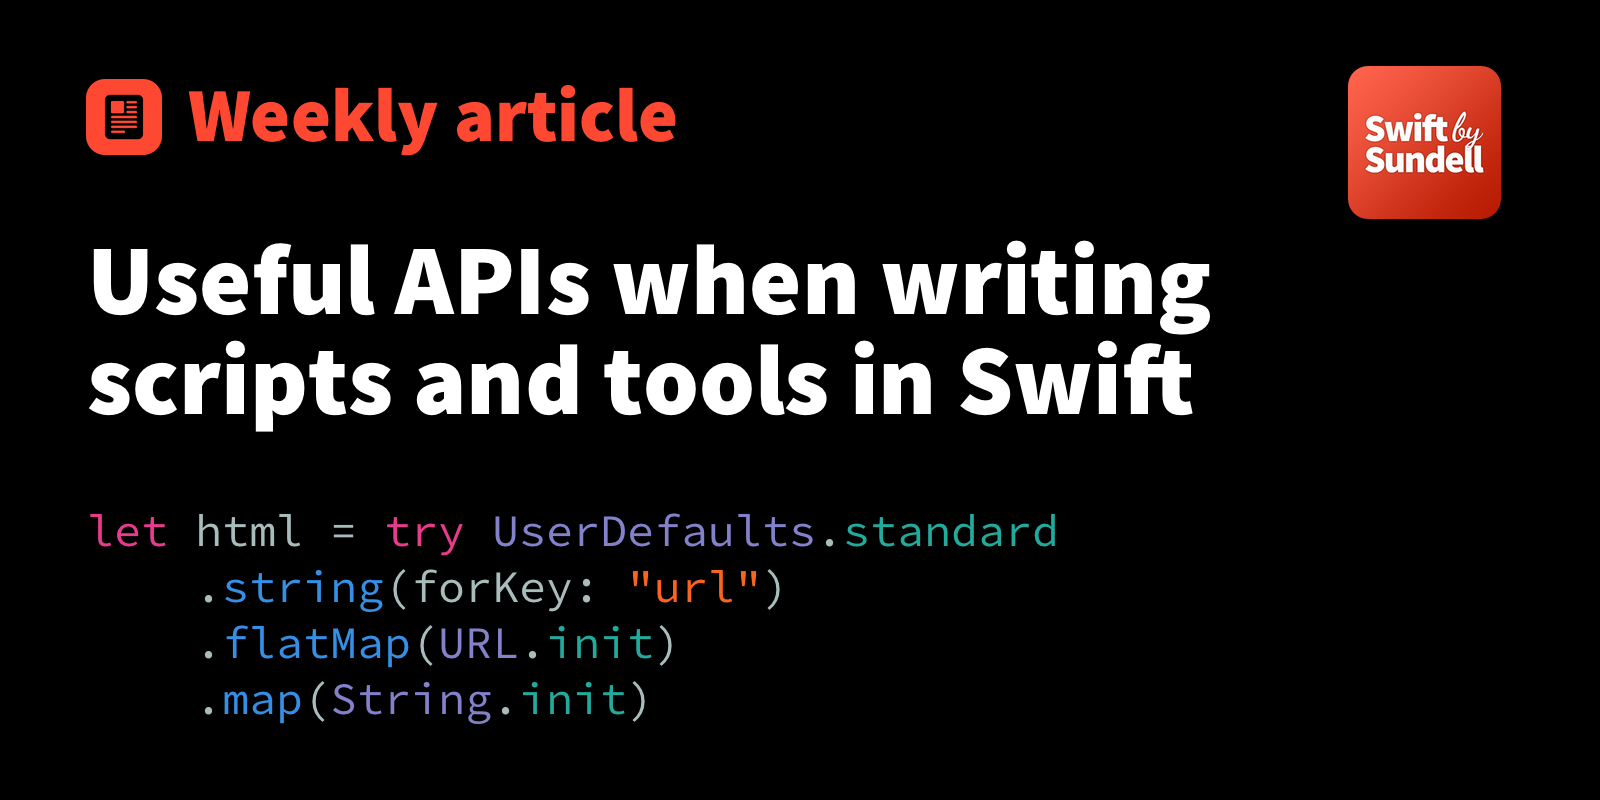 Useful APIs when writing scripts and tools in Swift